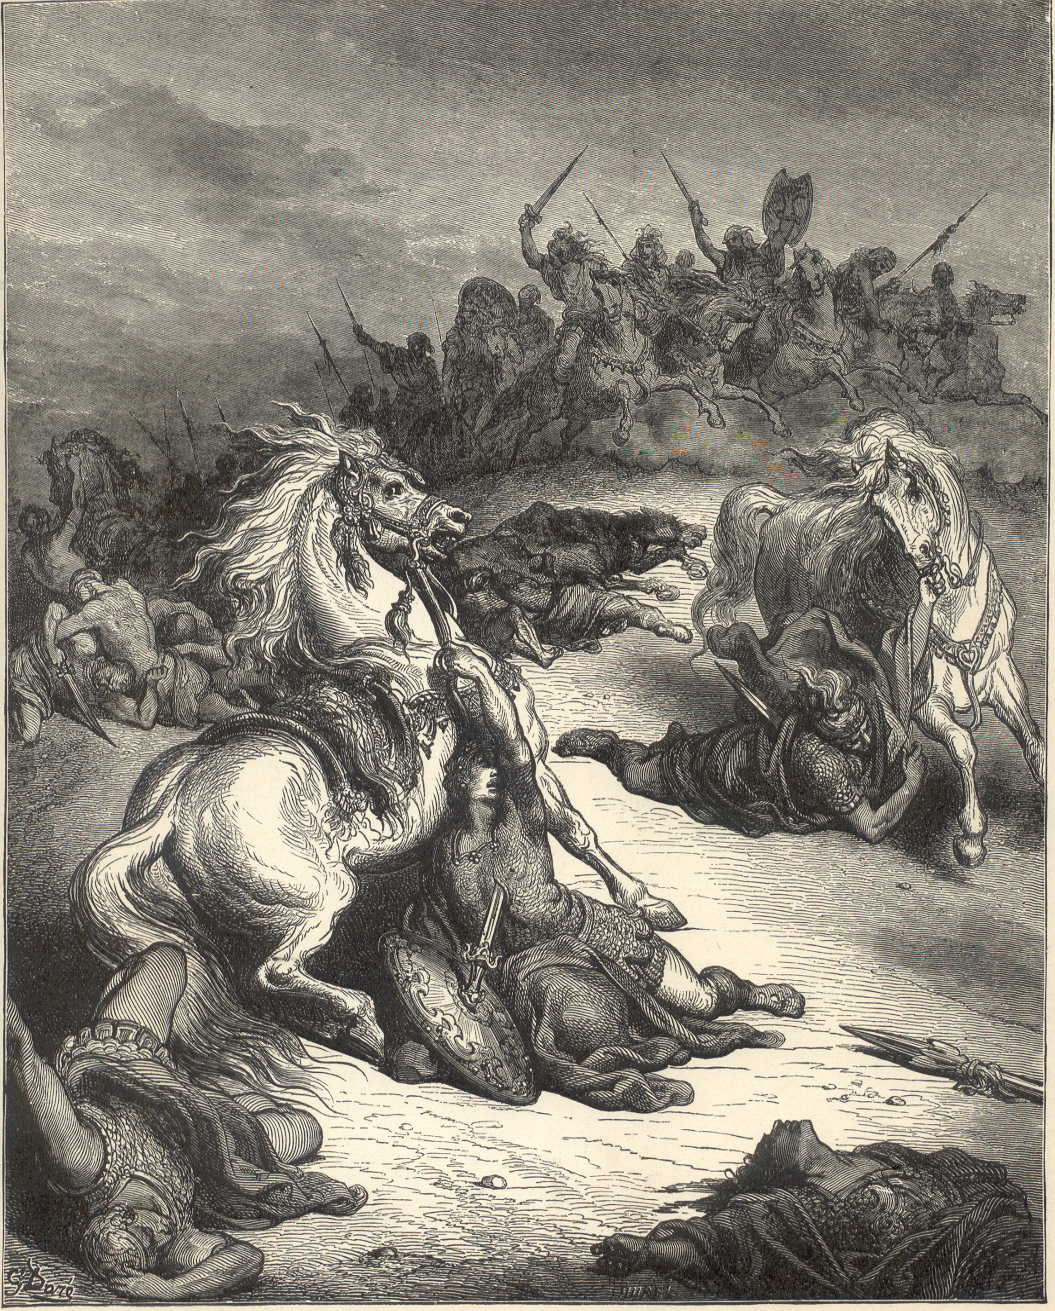 Death of Saul by Gustave Dore